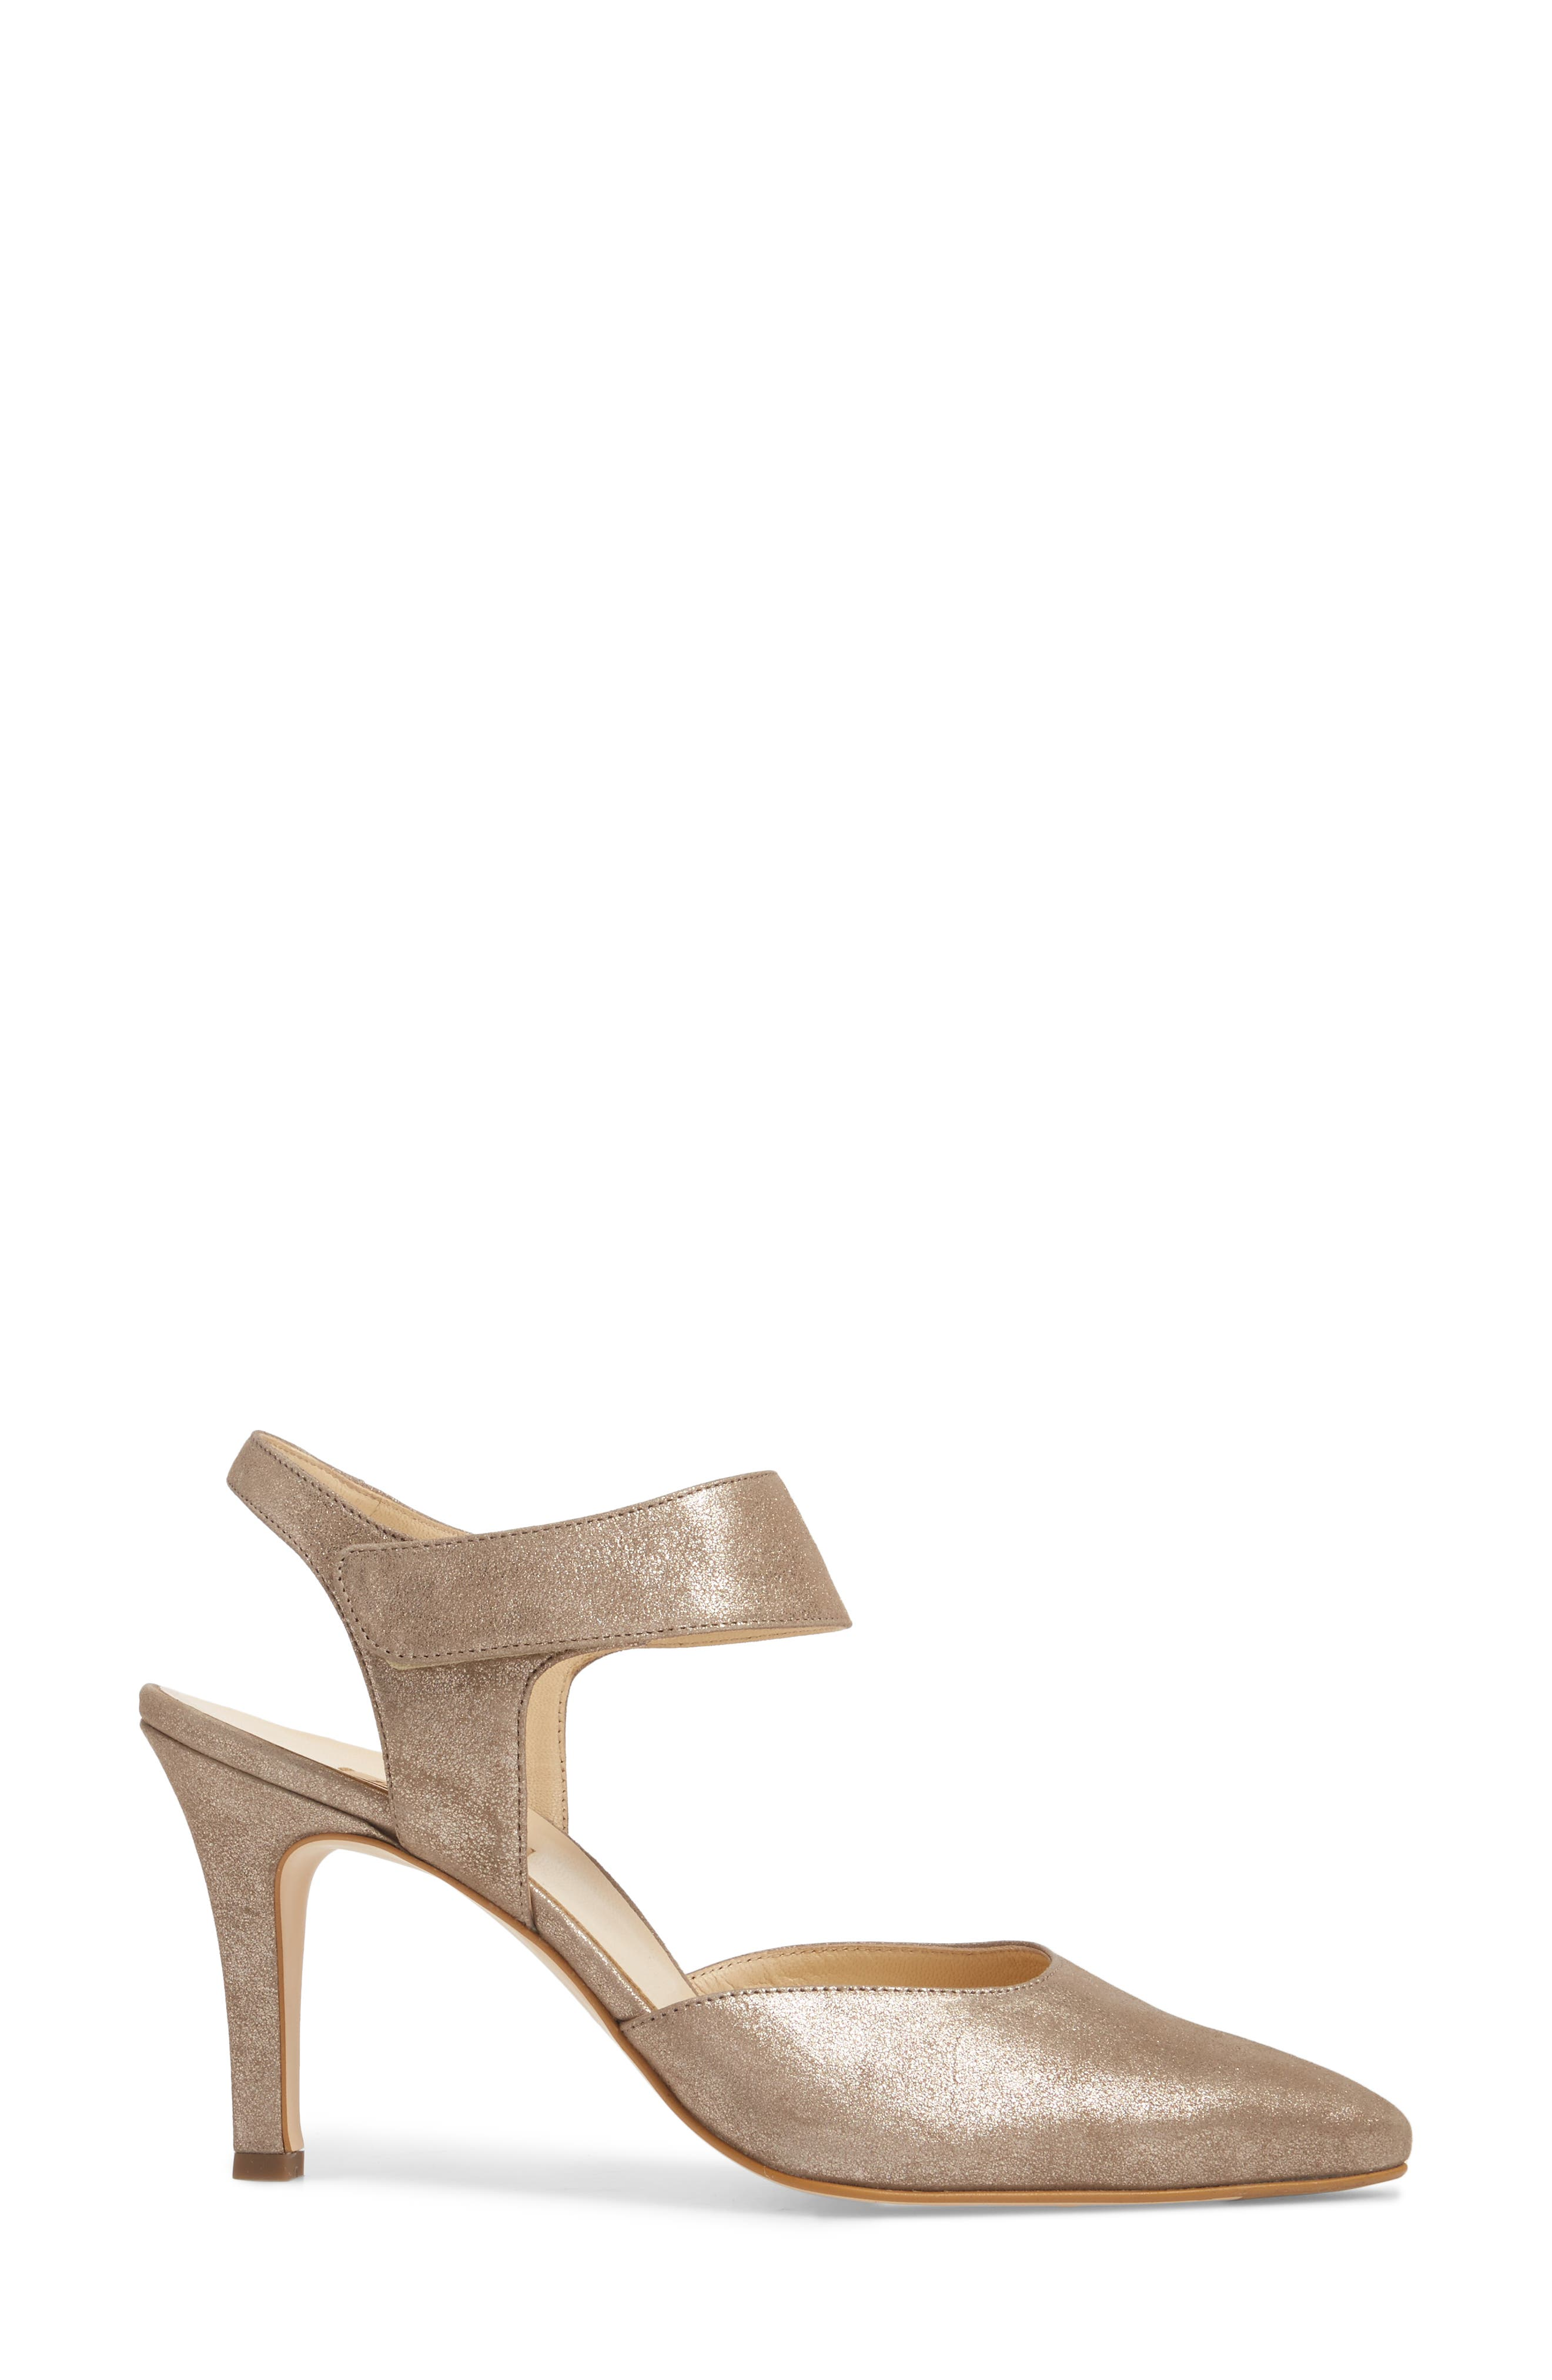 Nicolette Pointy Toe Pump,                             Alternate thumbnail 3, color,                             Champagne Metallic